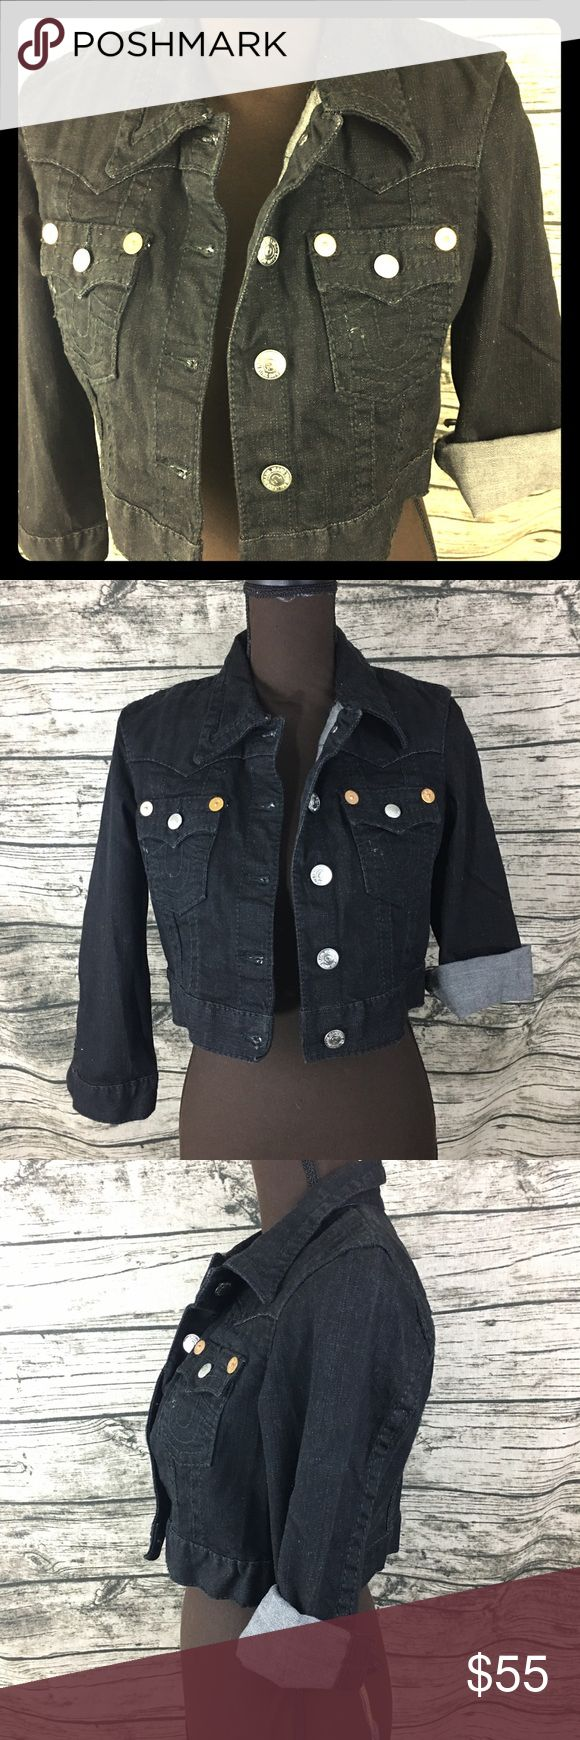 EUC True Religion Black Jimmy Crop Jean Jacket Never been worn True Religion Crop Black denim jean jacket.  Can be worn many ways dressed up or for a night out! Be the star of the show with this jacket! Last two photos show style ideas, not actual jacket! Small writing on inside jacket by tag. True Religion Jackets & Coats Jean Jackets